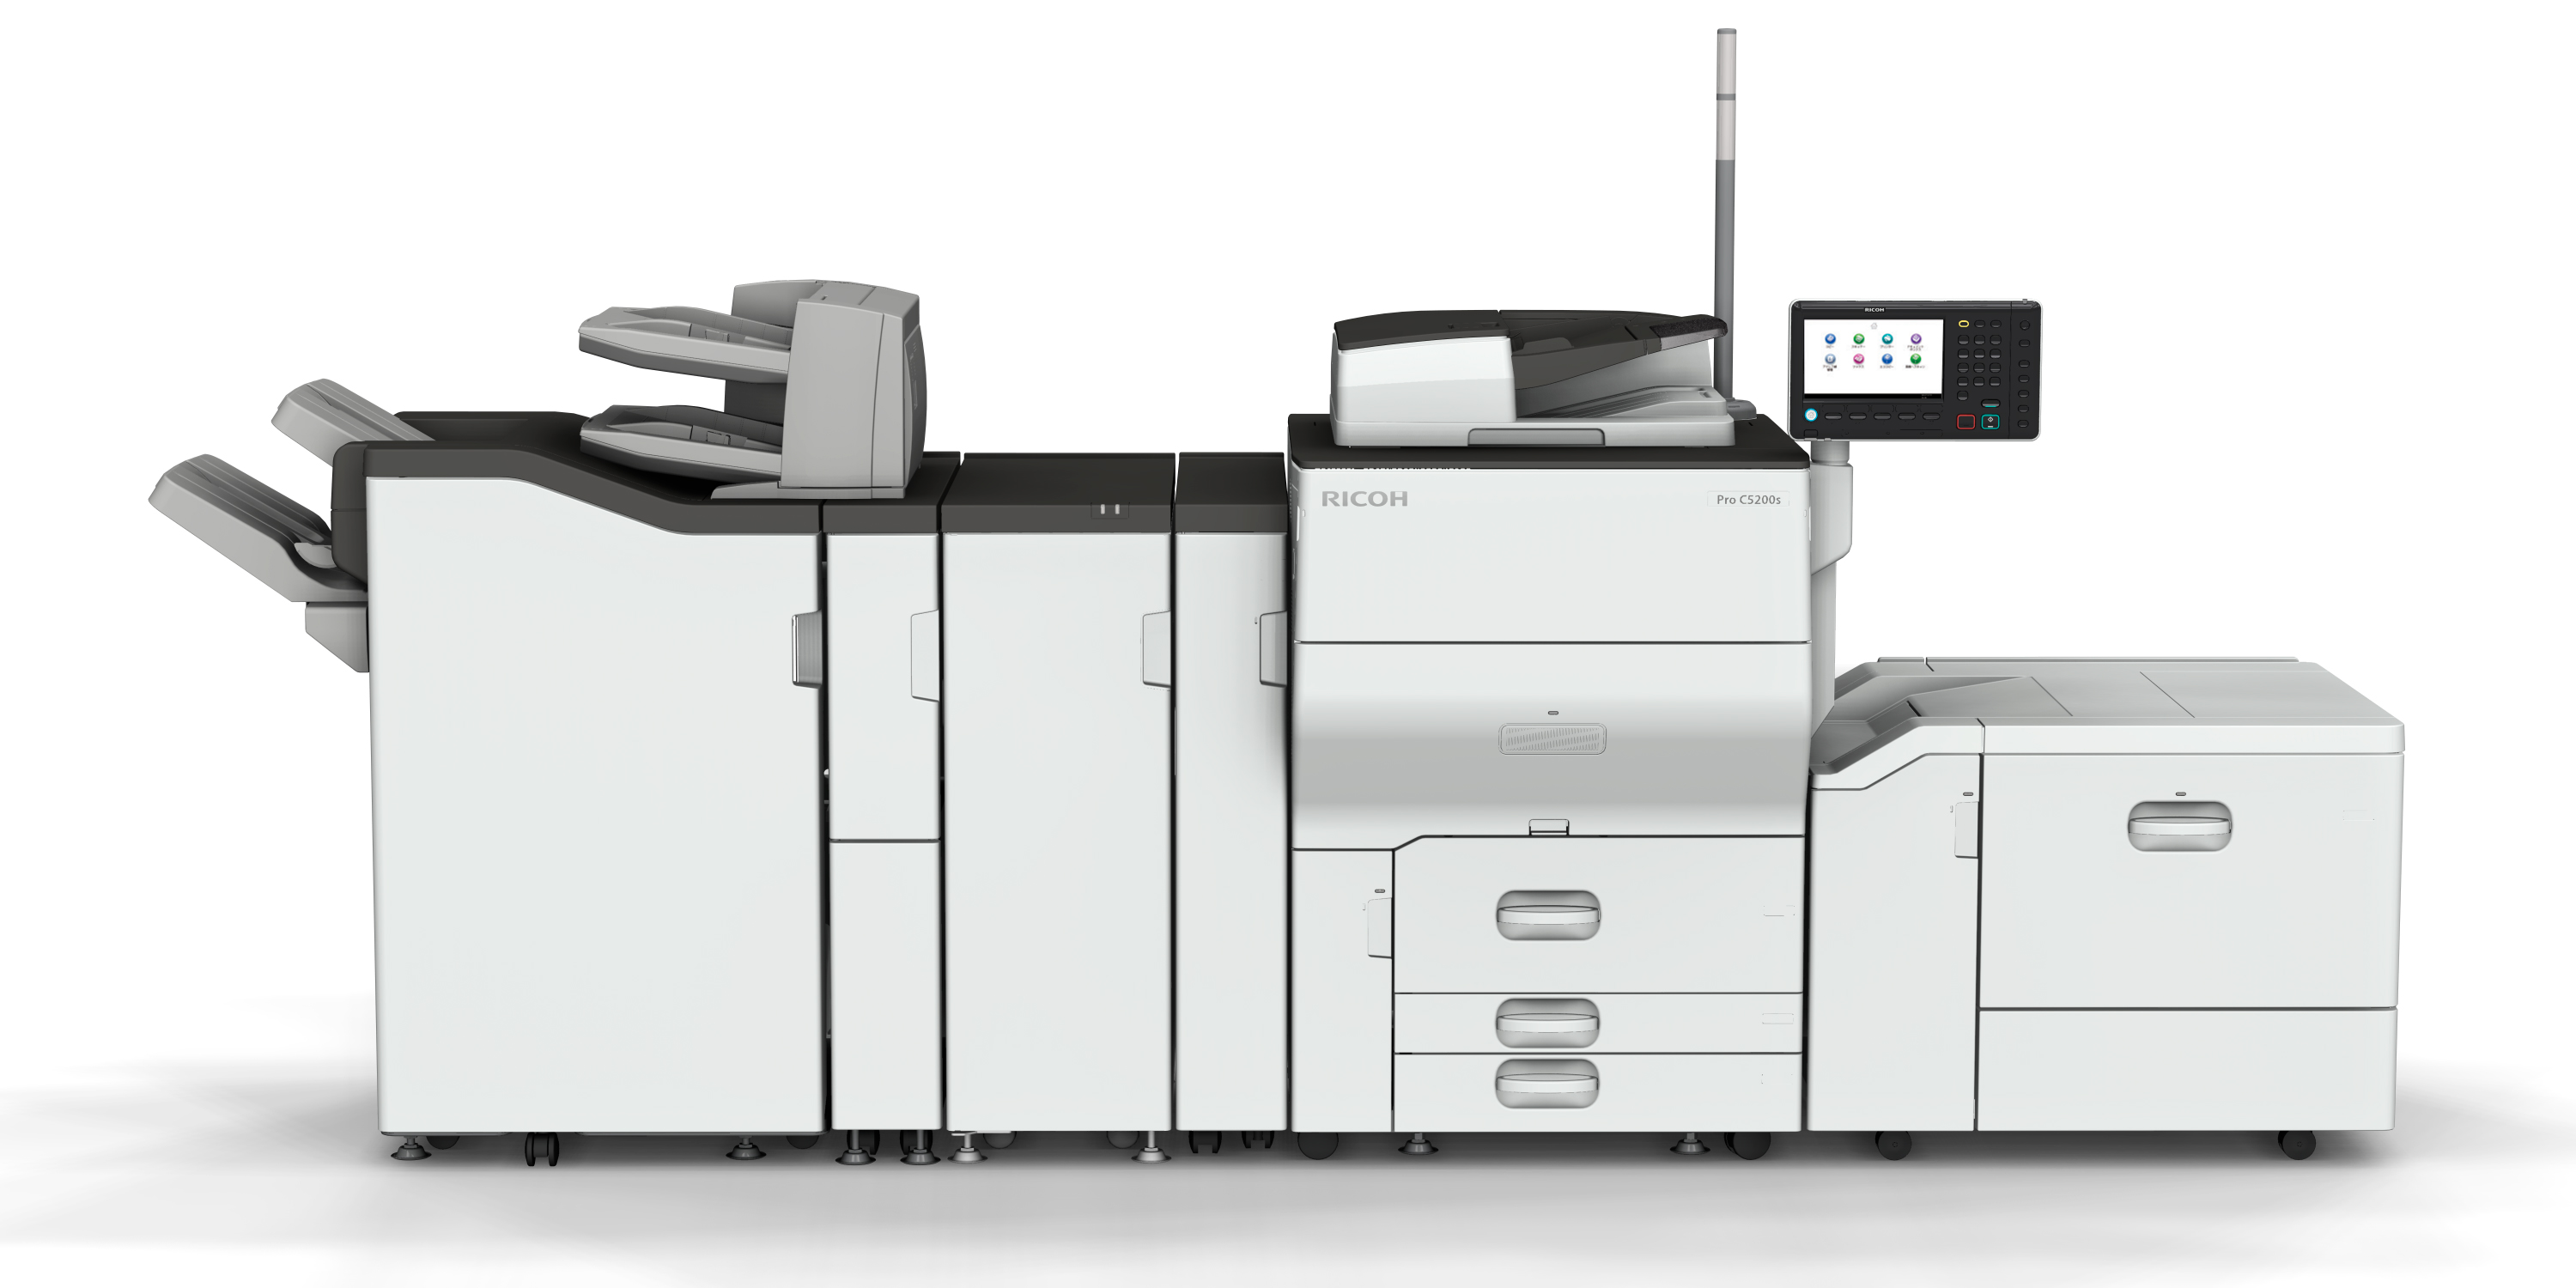 Ricoh's digital book printing solution and Ricoh Pro™ C5200 series receive EDP endorsement